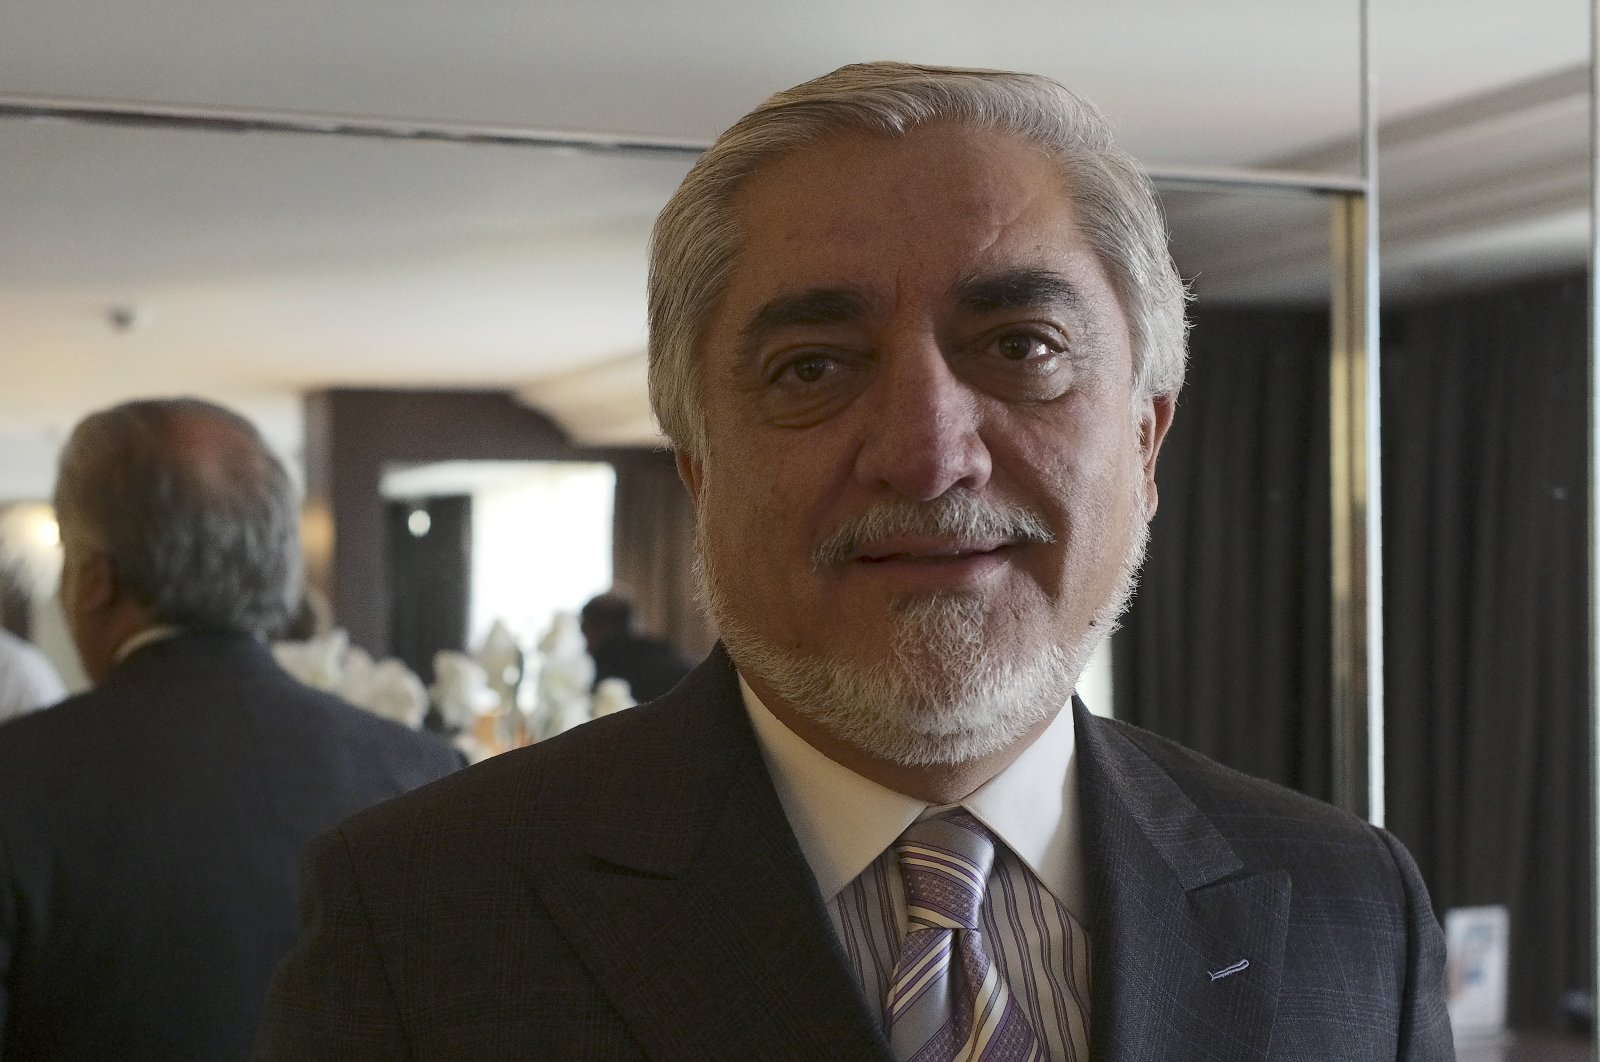 Afghanistan's chief peace envoy Abdullah Abdullah is photographed during an interview with The Associated Press, in Ankara, Turkey, Nov. 21, 2020. (AP Photo)